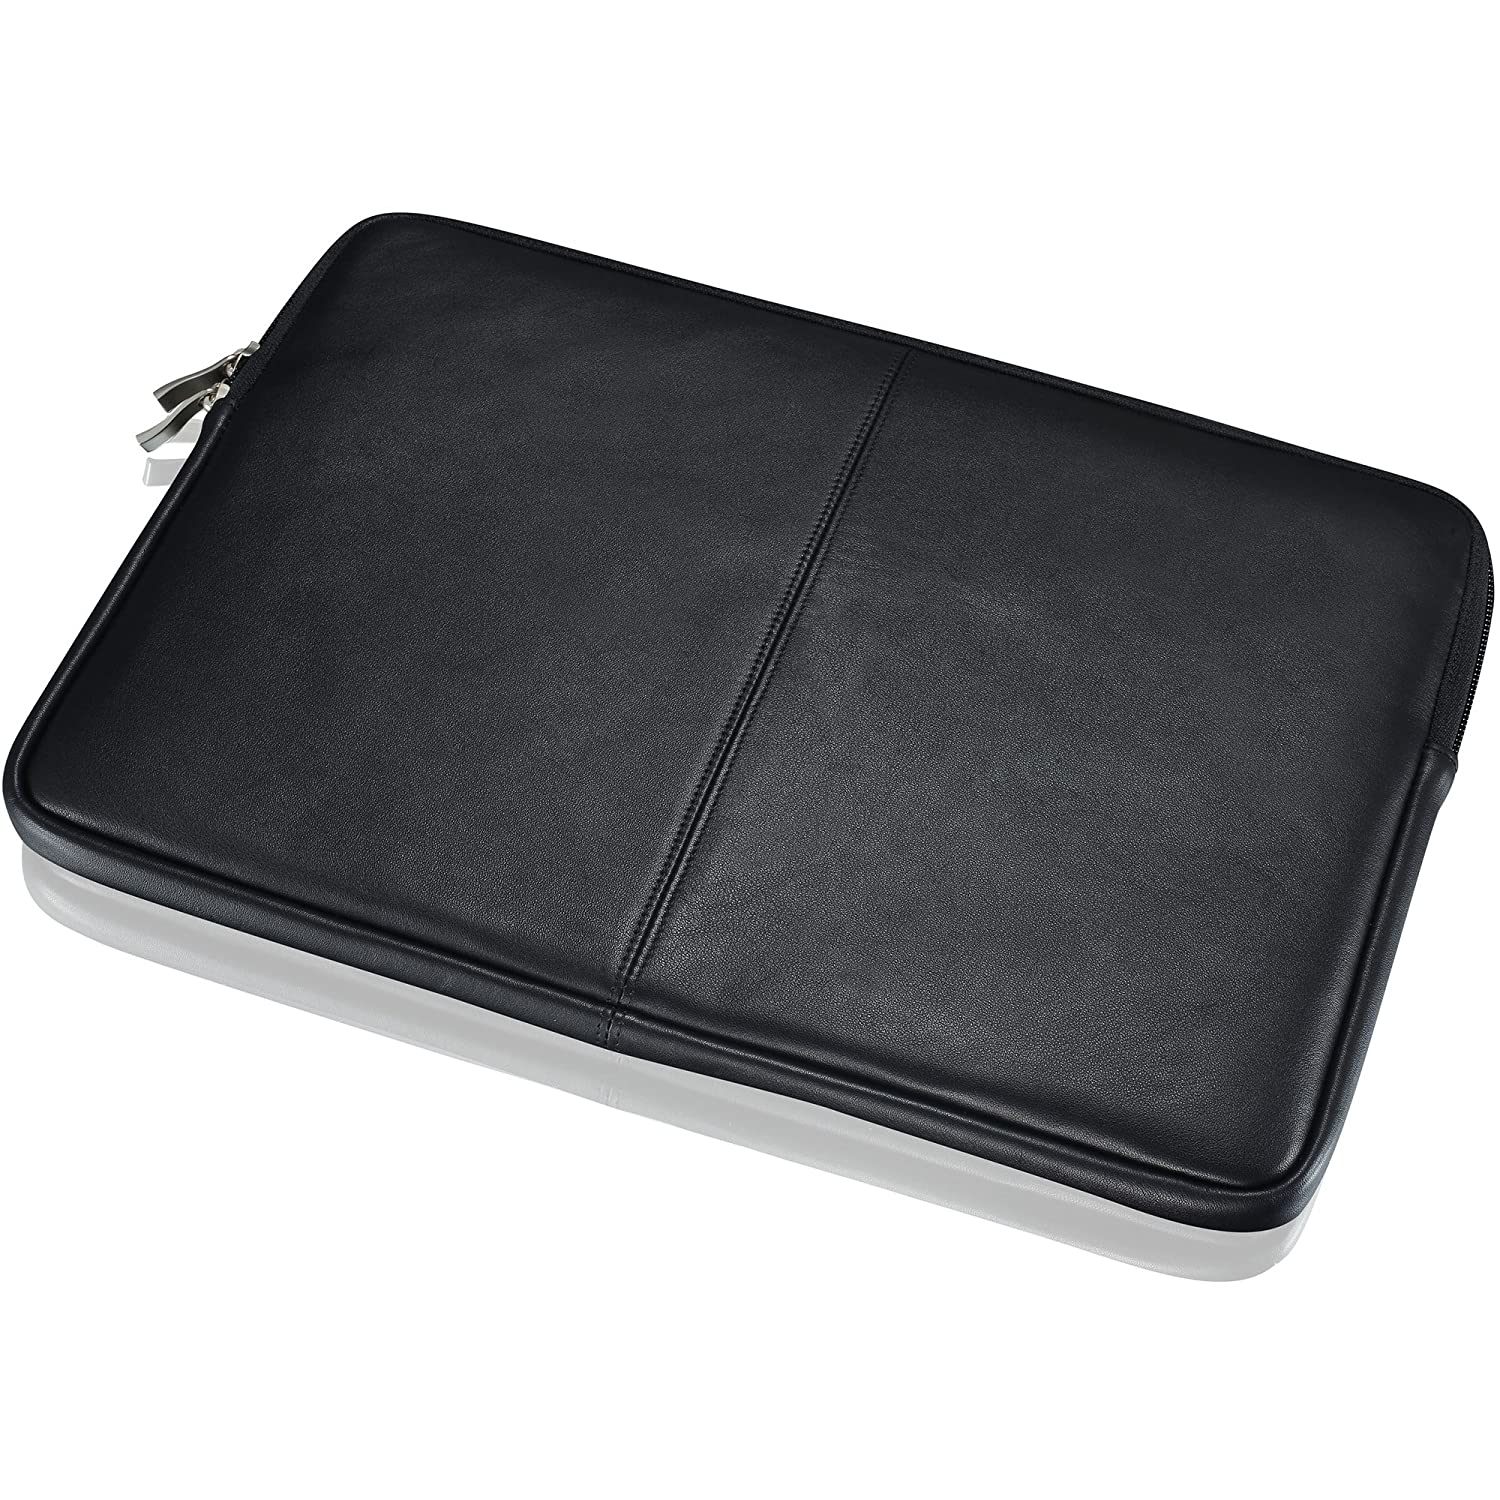 "kavaj sleeve leather case ""sydney"" for the apple"